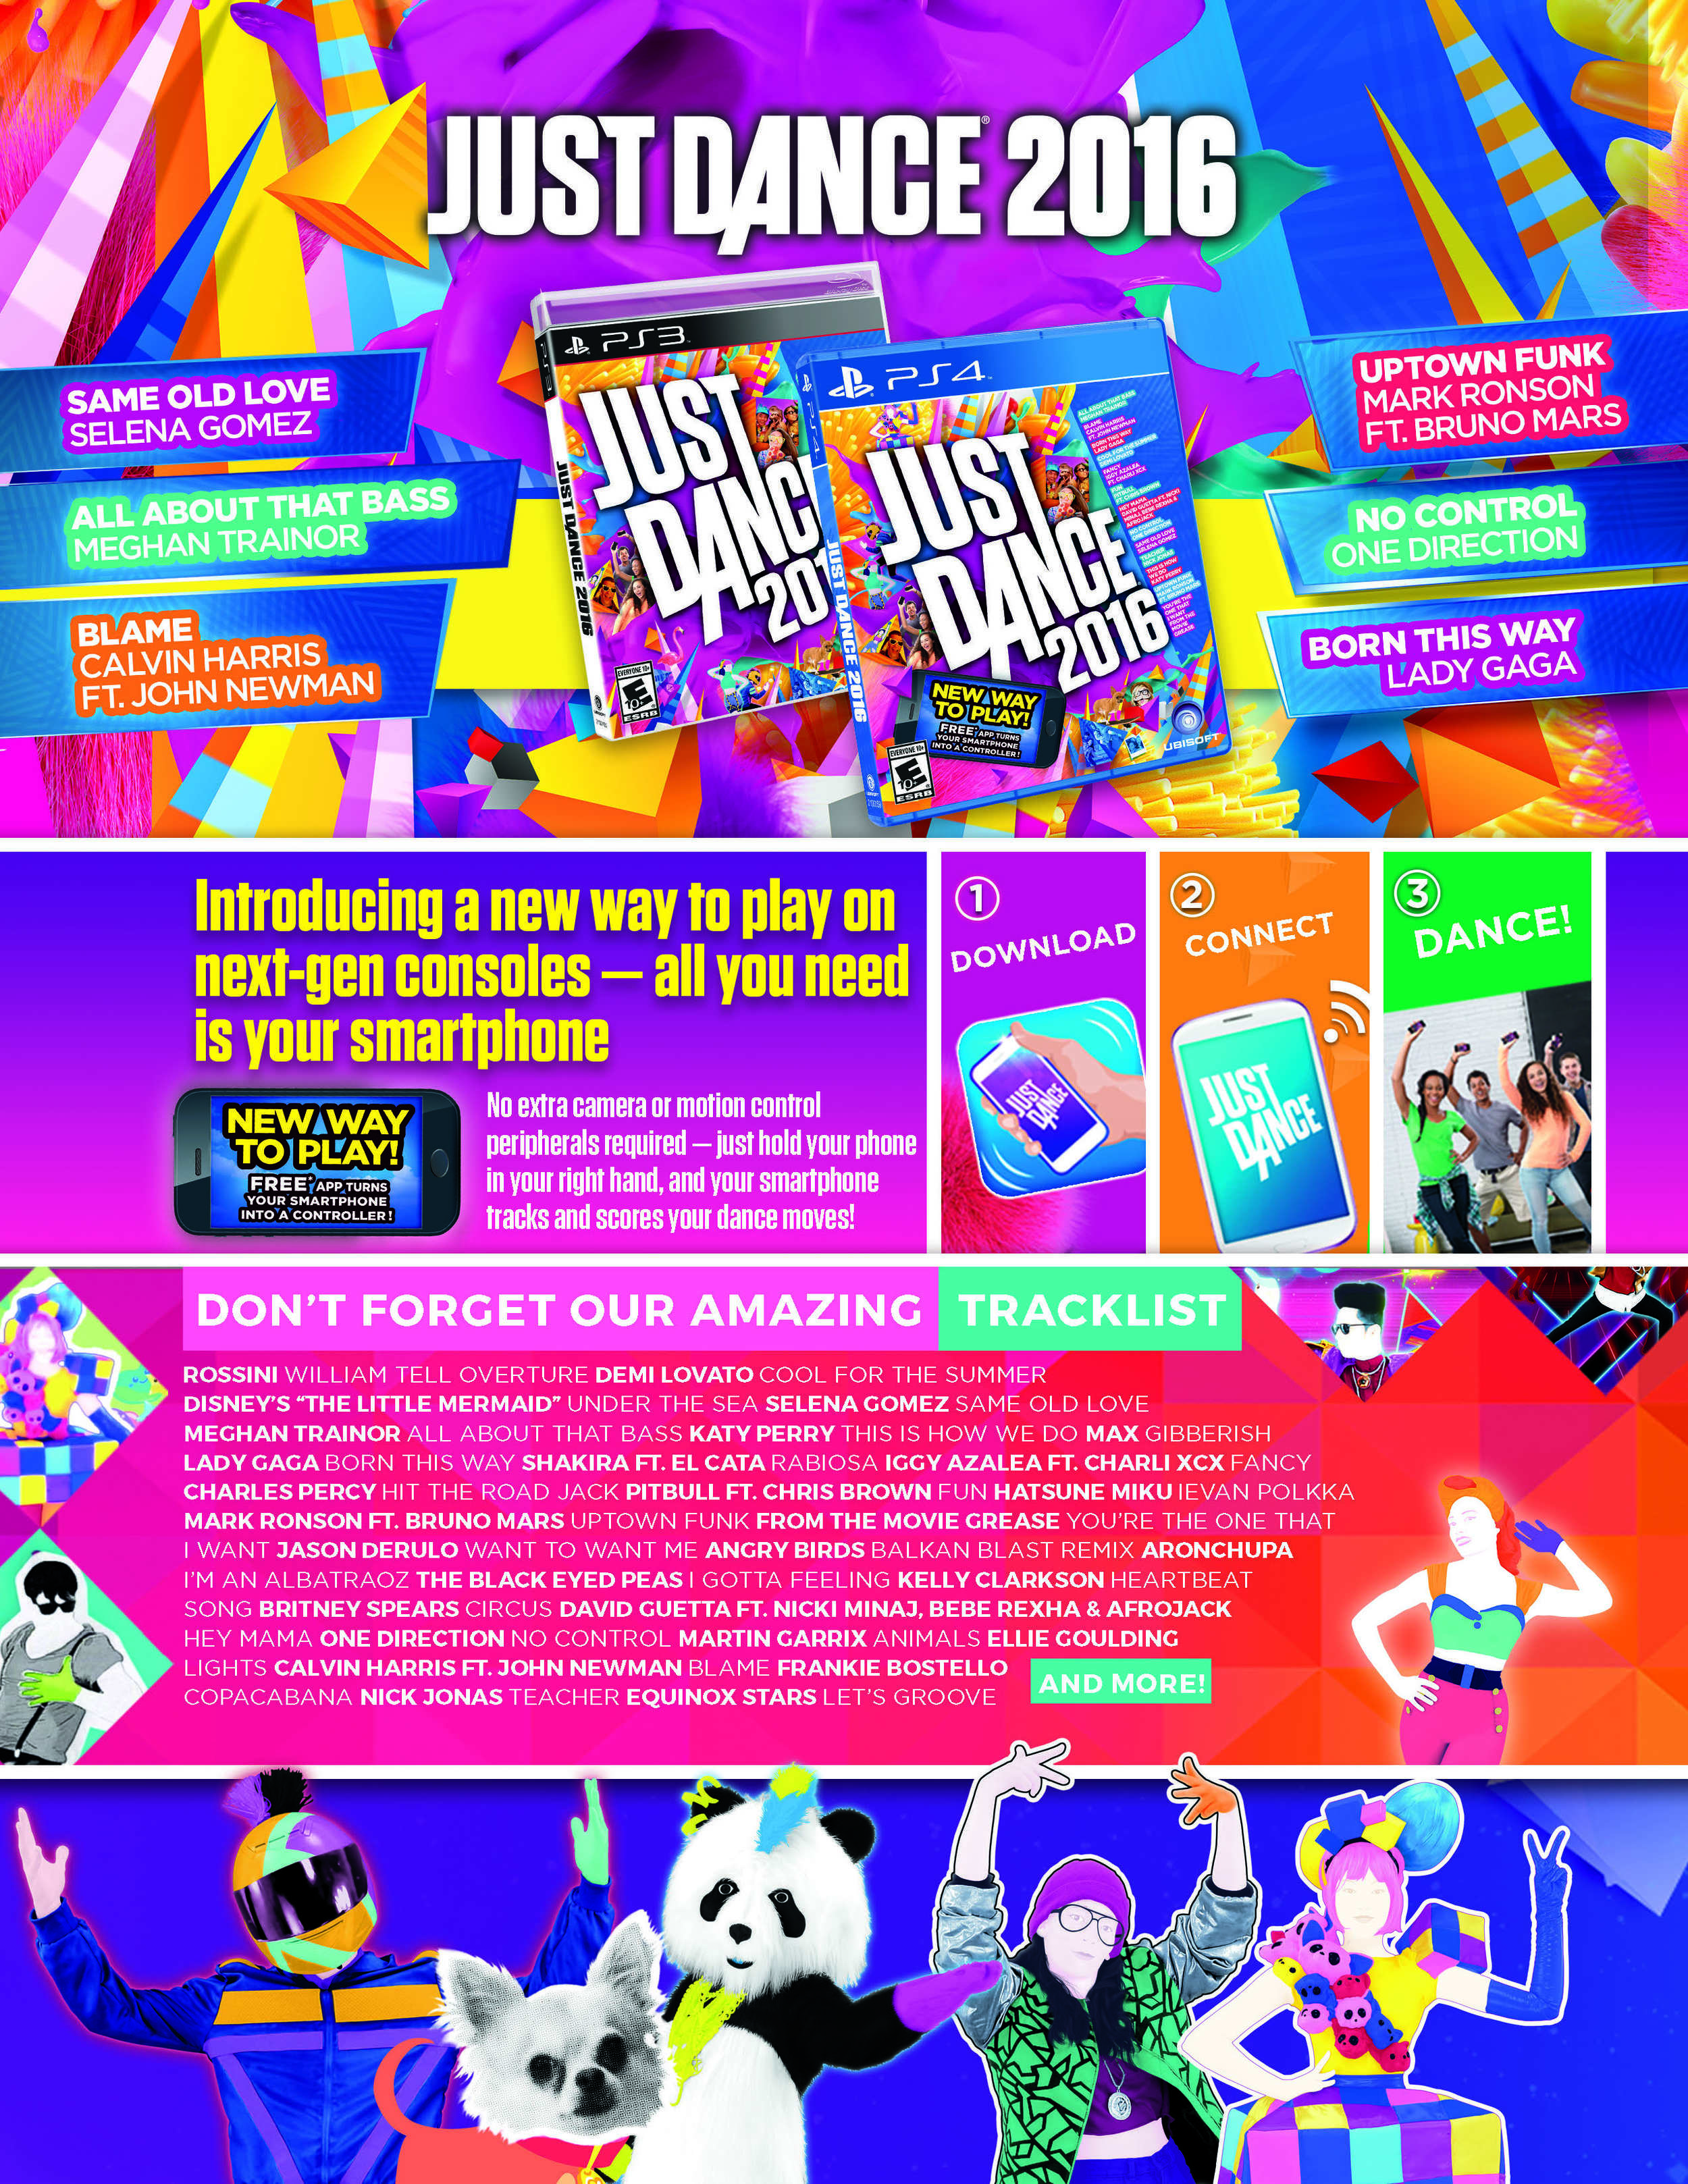 Just Dance 2016 Infosheet